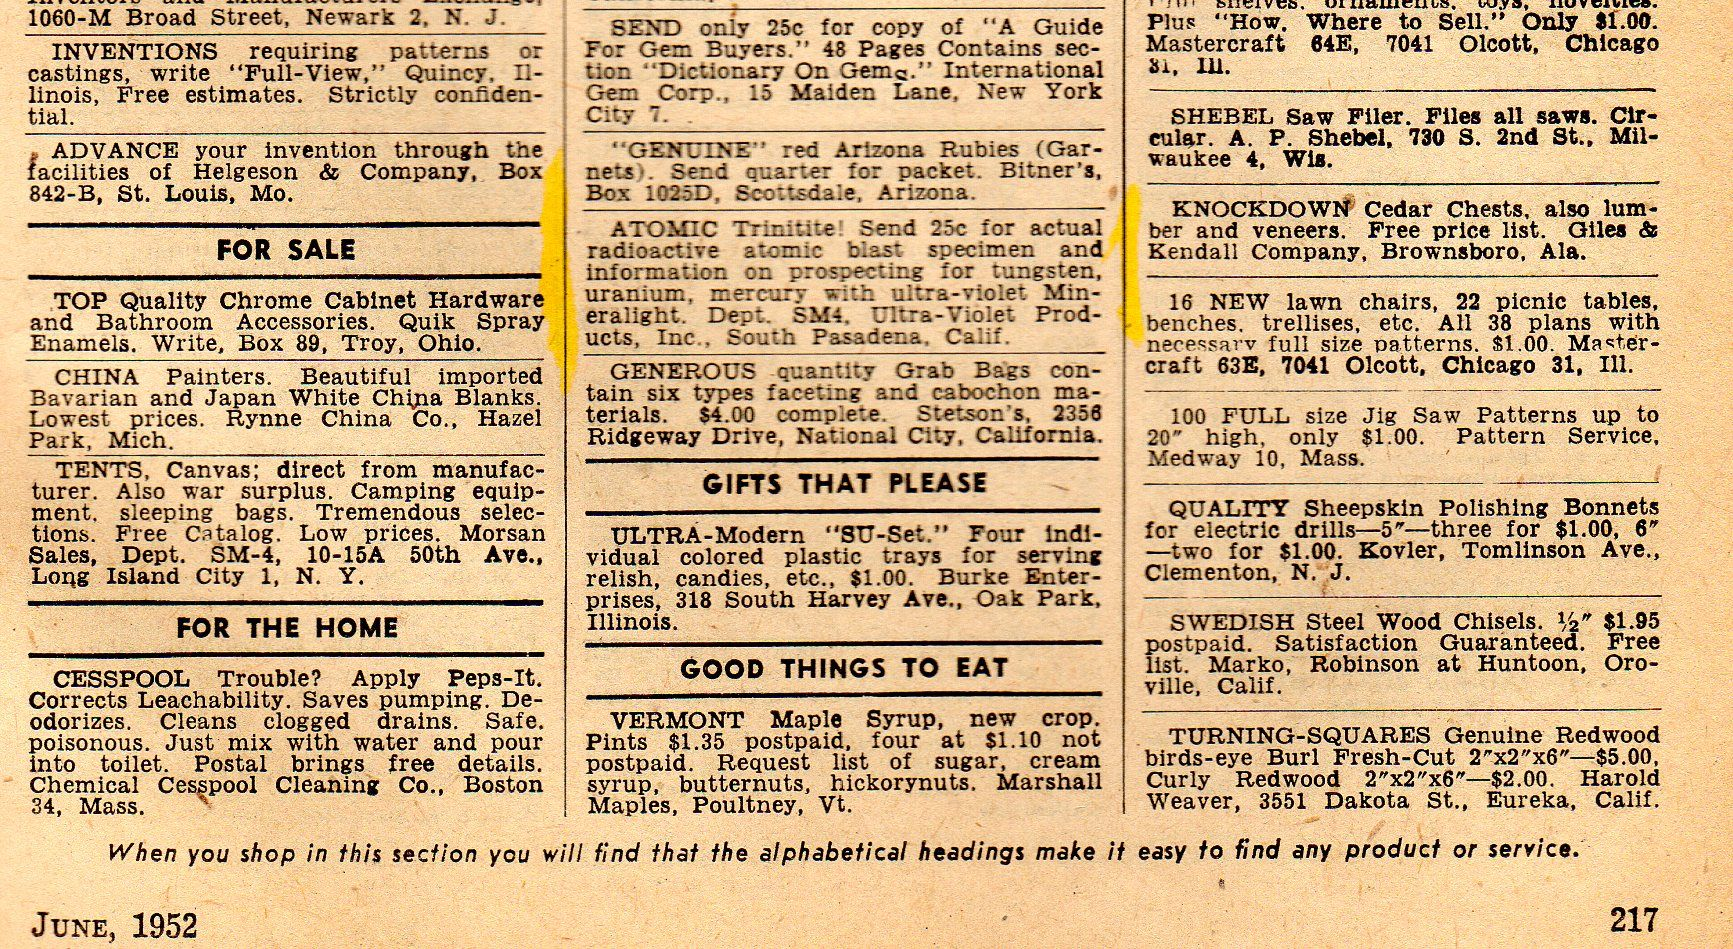 Check The Highlighted 1952 Ad For 25 Cents You Can Get A Piece Of Radioactive Rock From The A Bomb Blast Site O Where To Sell Things To Sell Glow In The Dark